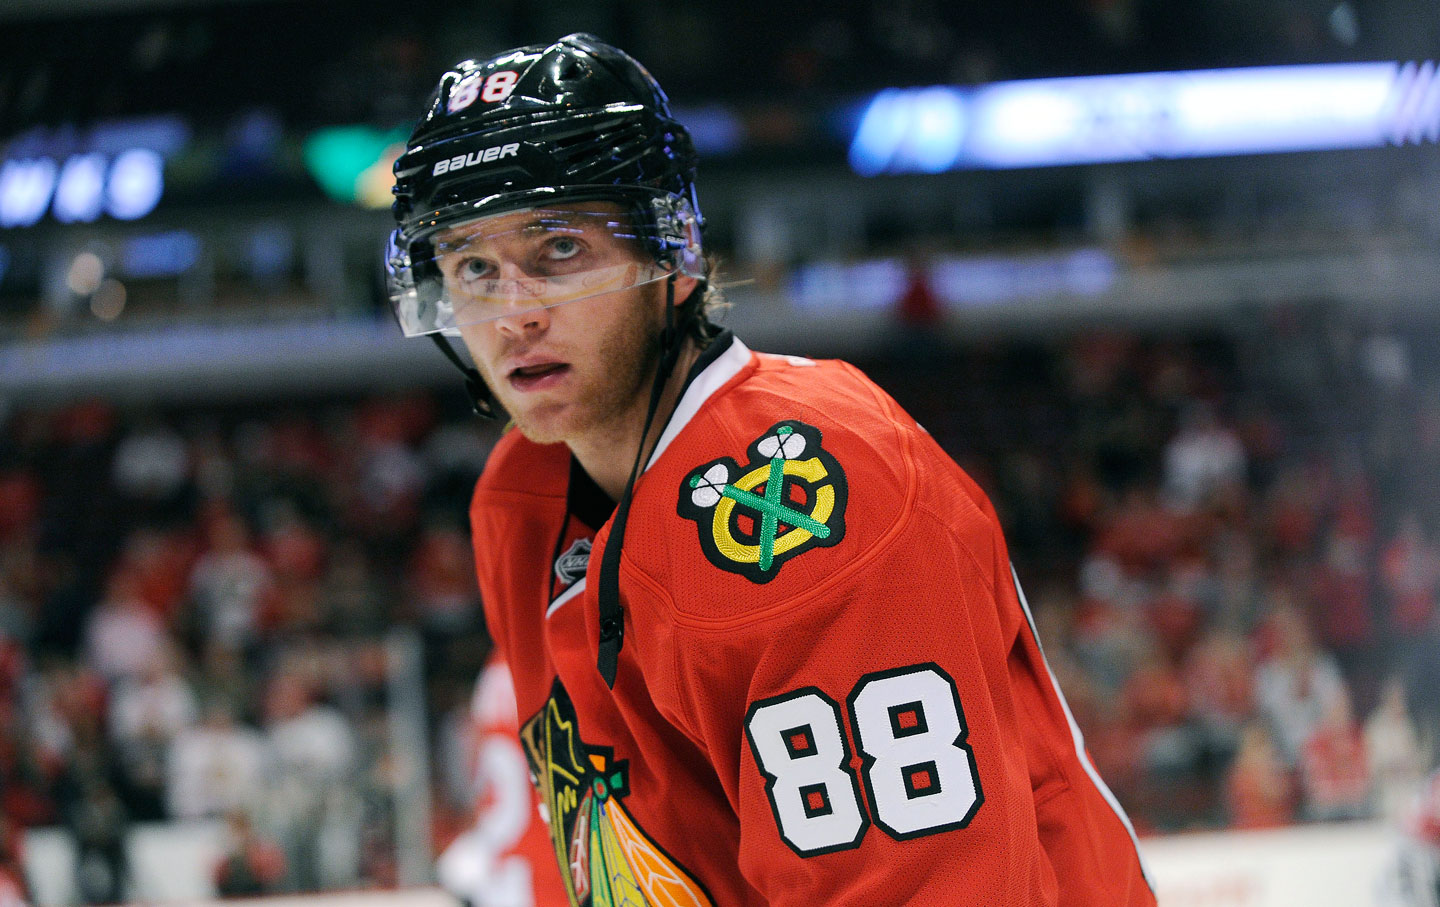 Patrick Kane earned a 6.5 million dollar salary, leaving the net worth at 31.5 million in 2017